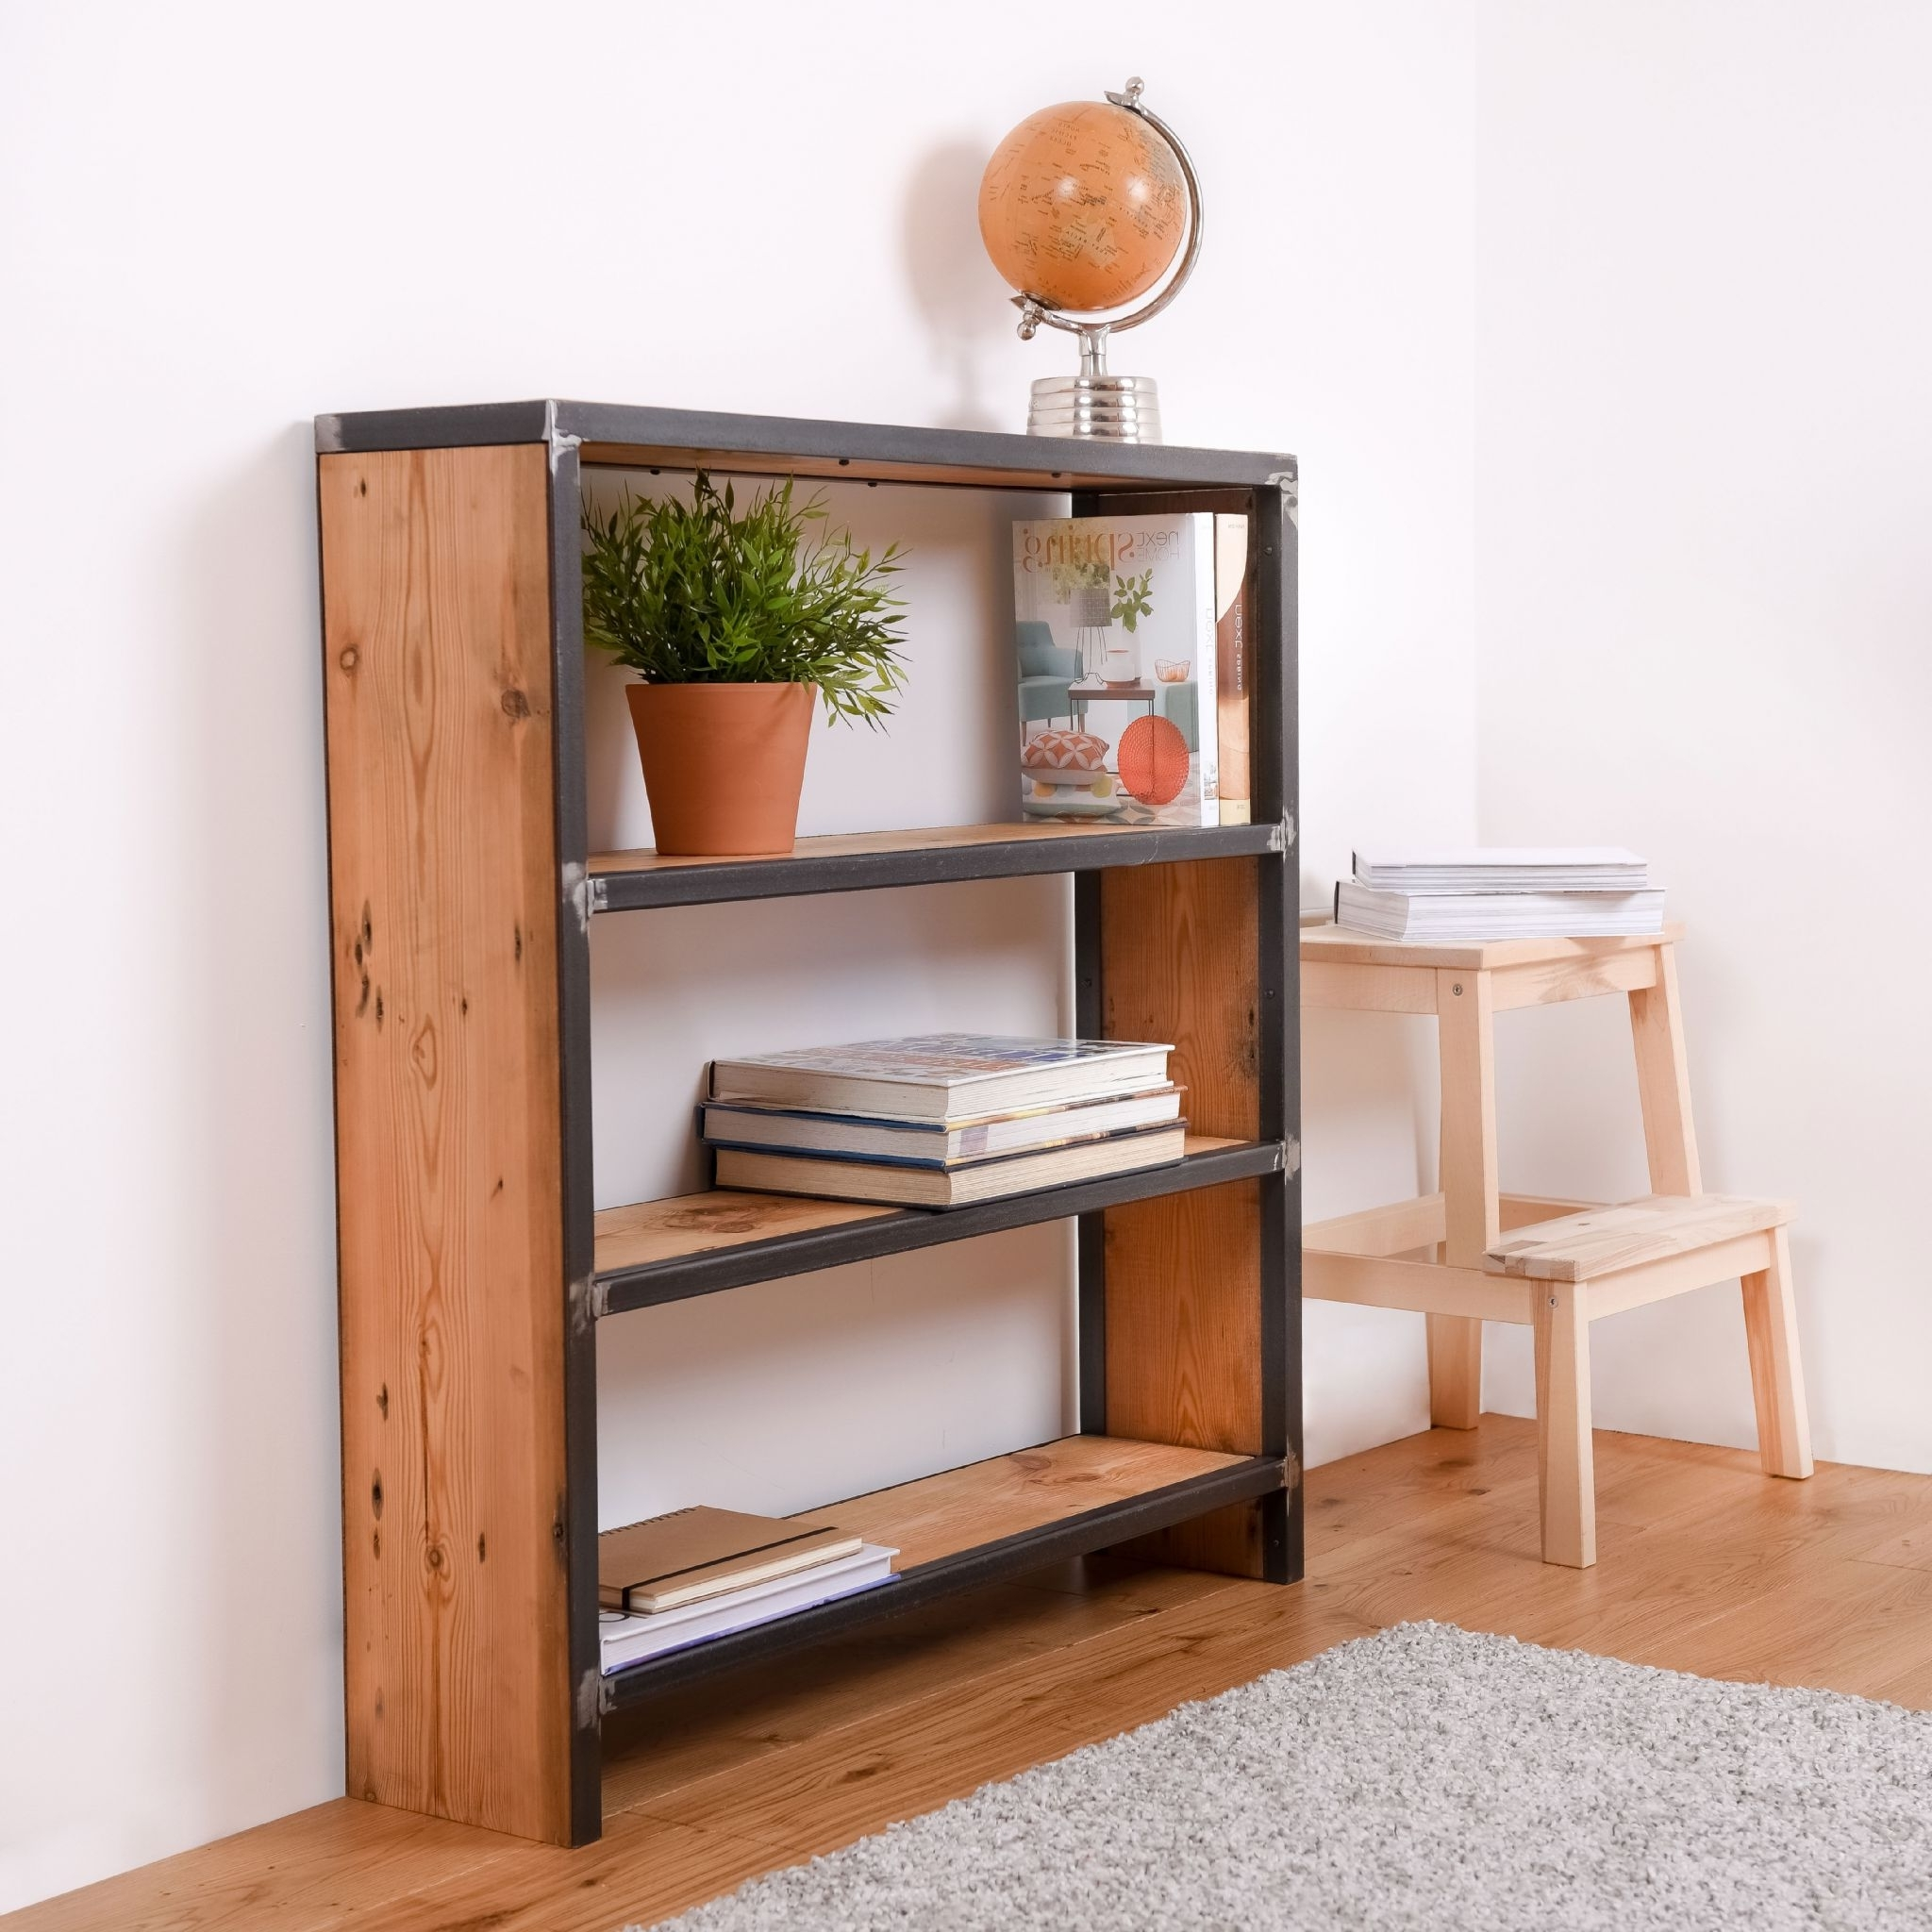 Reclaimed Wood Bookcases With Well Liked Reclaimed Wood And Steel Industrial Bookcase (View 15 of 15)